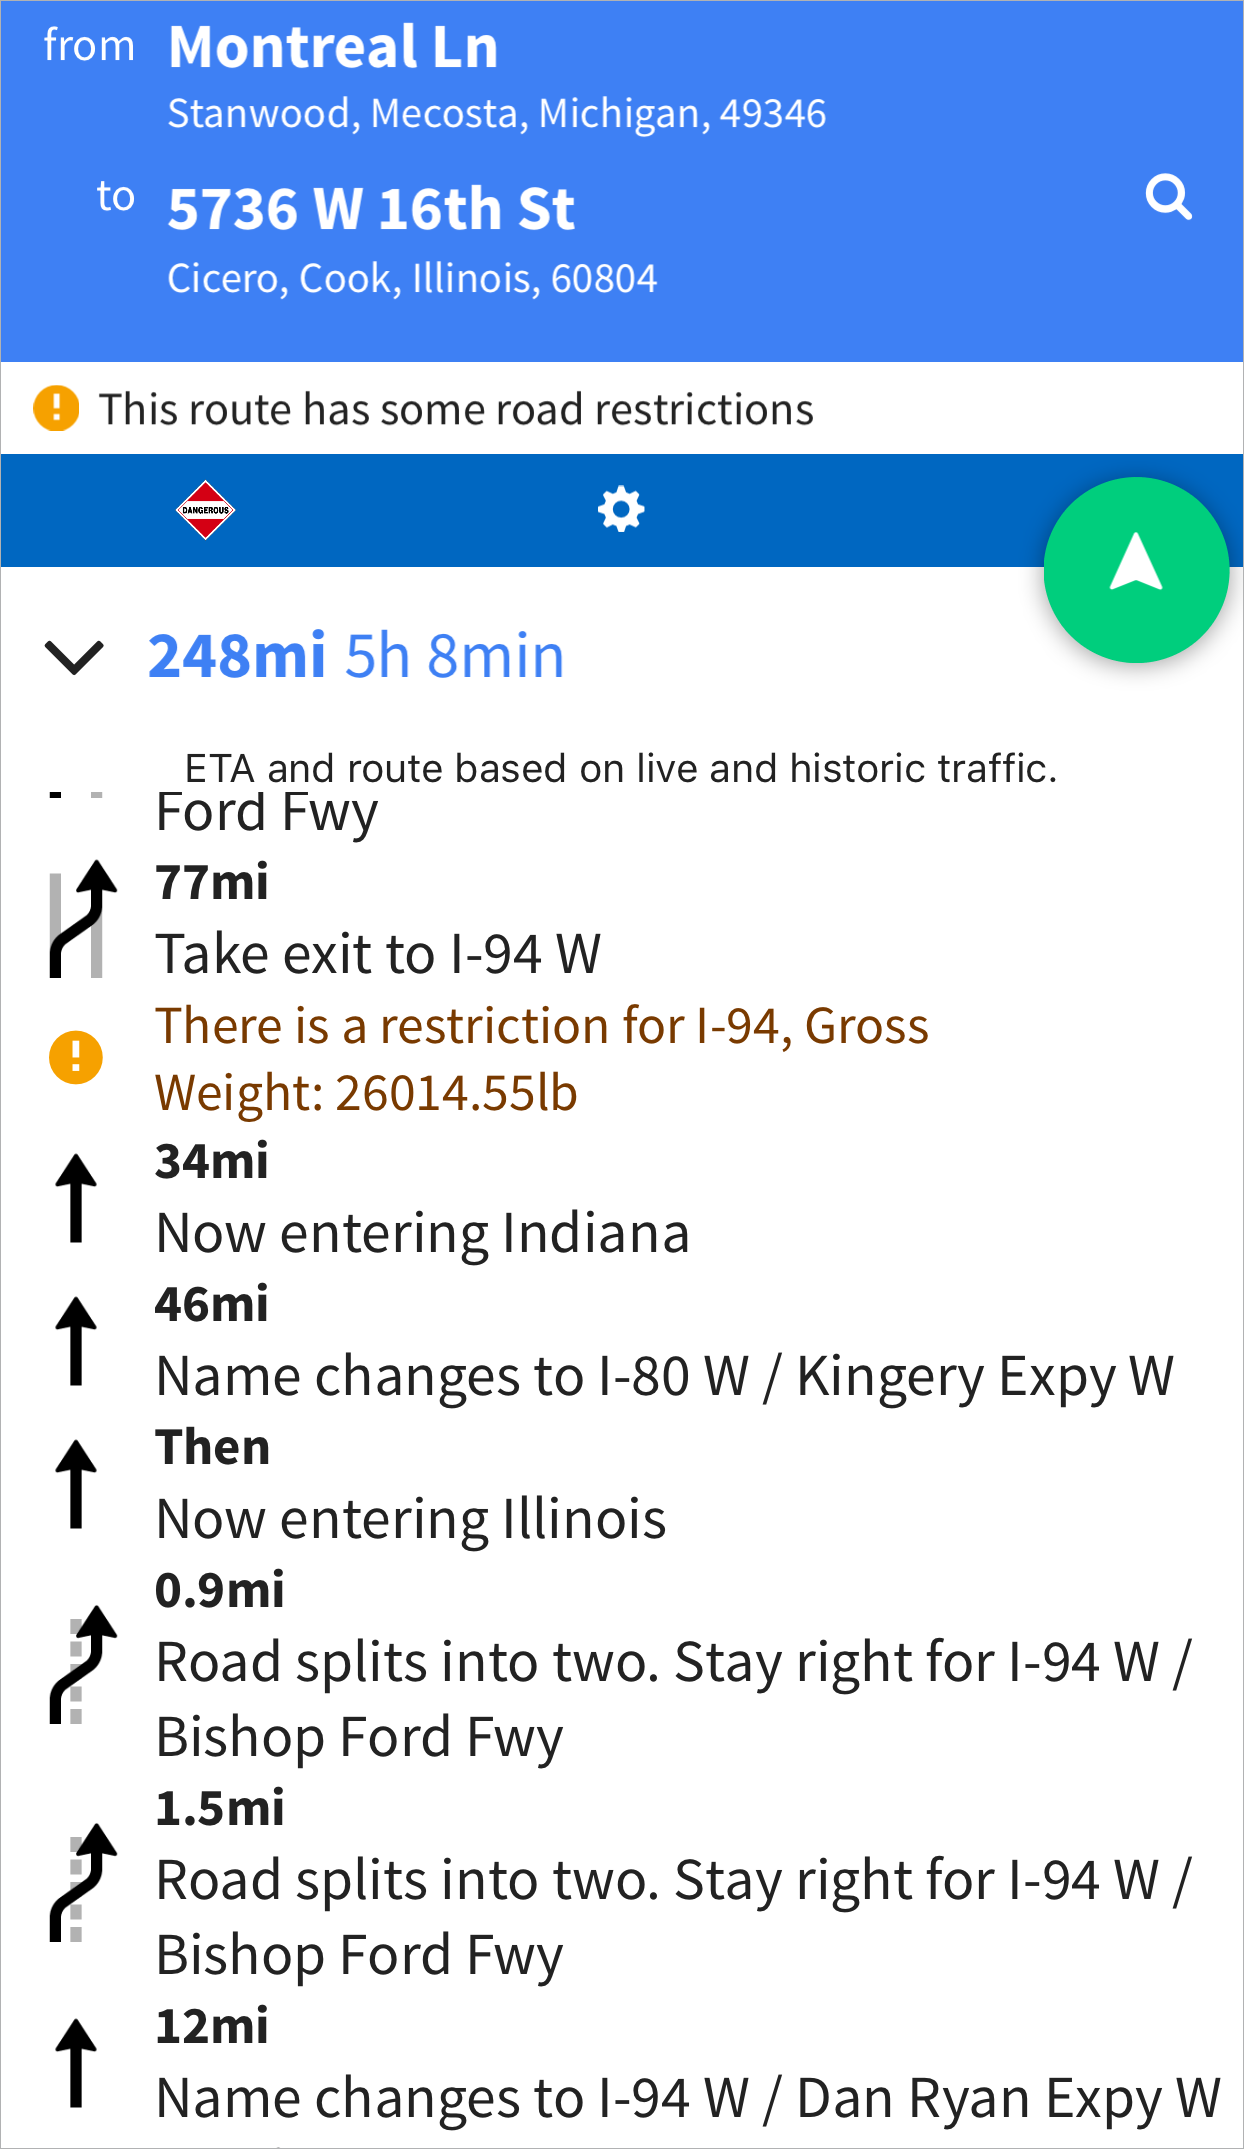 nav_directions_list_with__road_restrictions.png